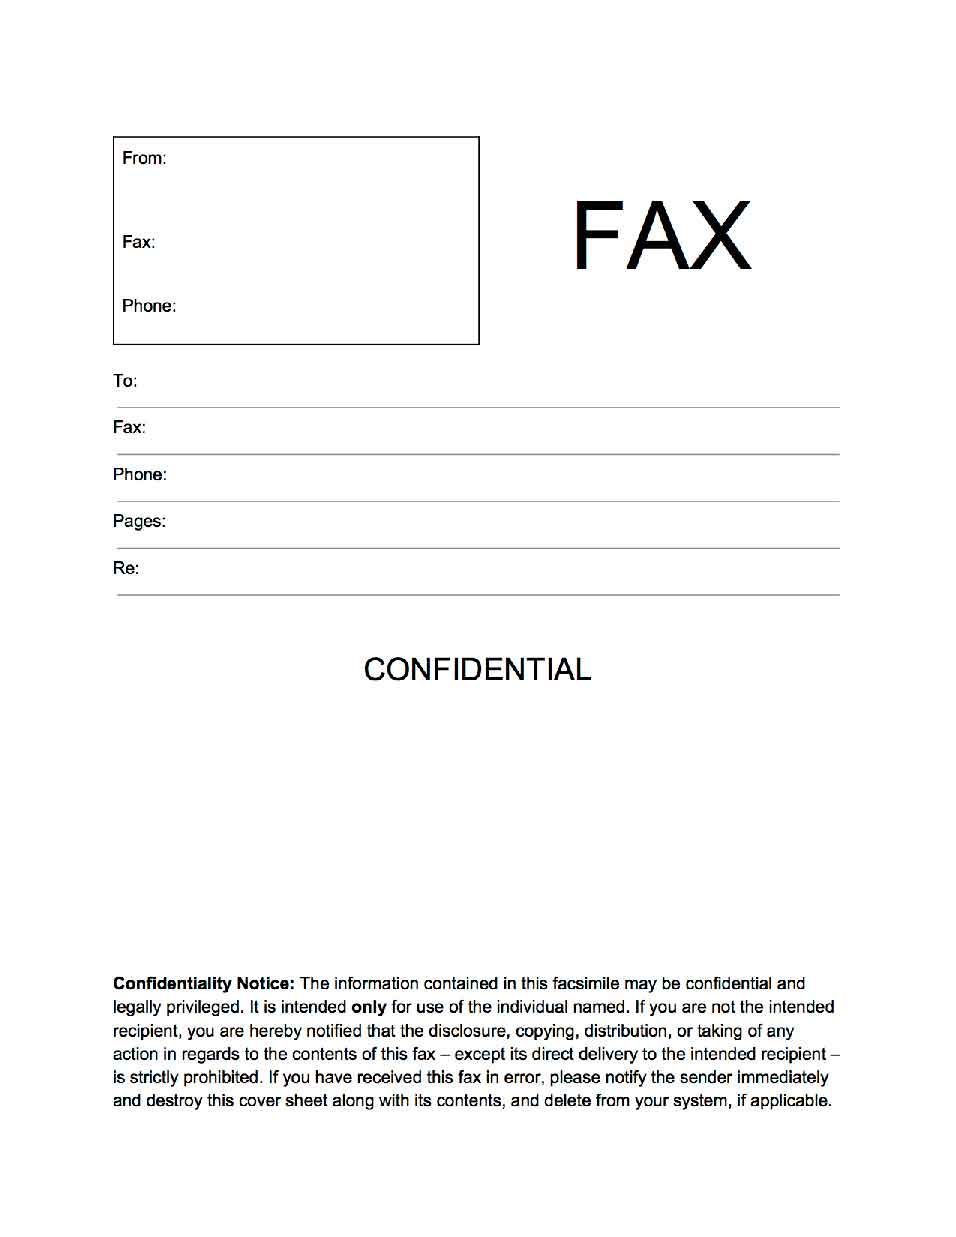 generic fax cover sheet – Free Fax Cover Letters